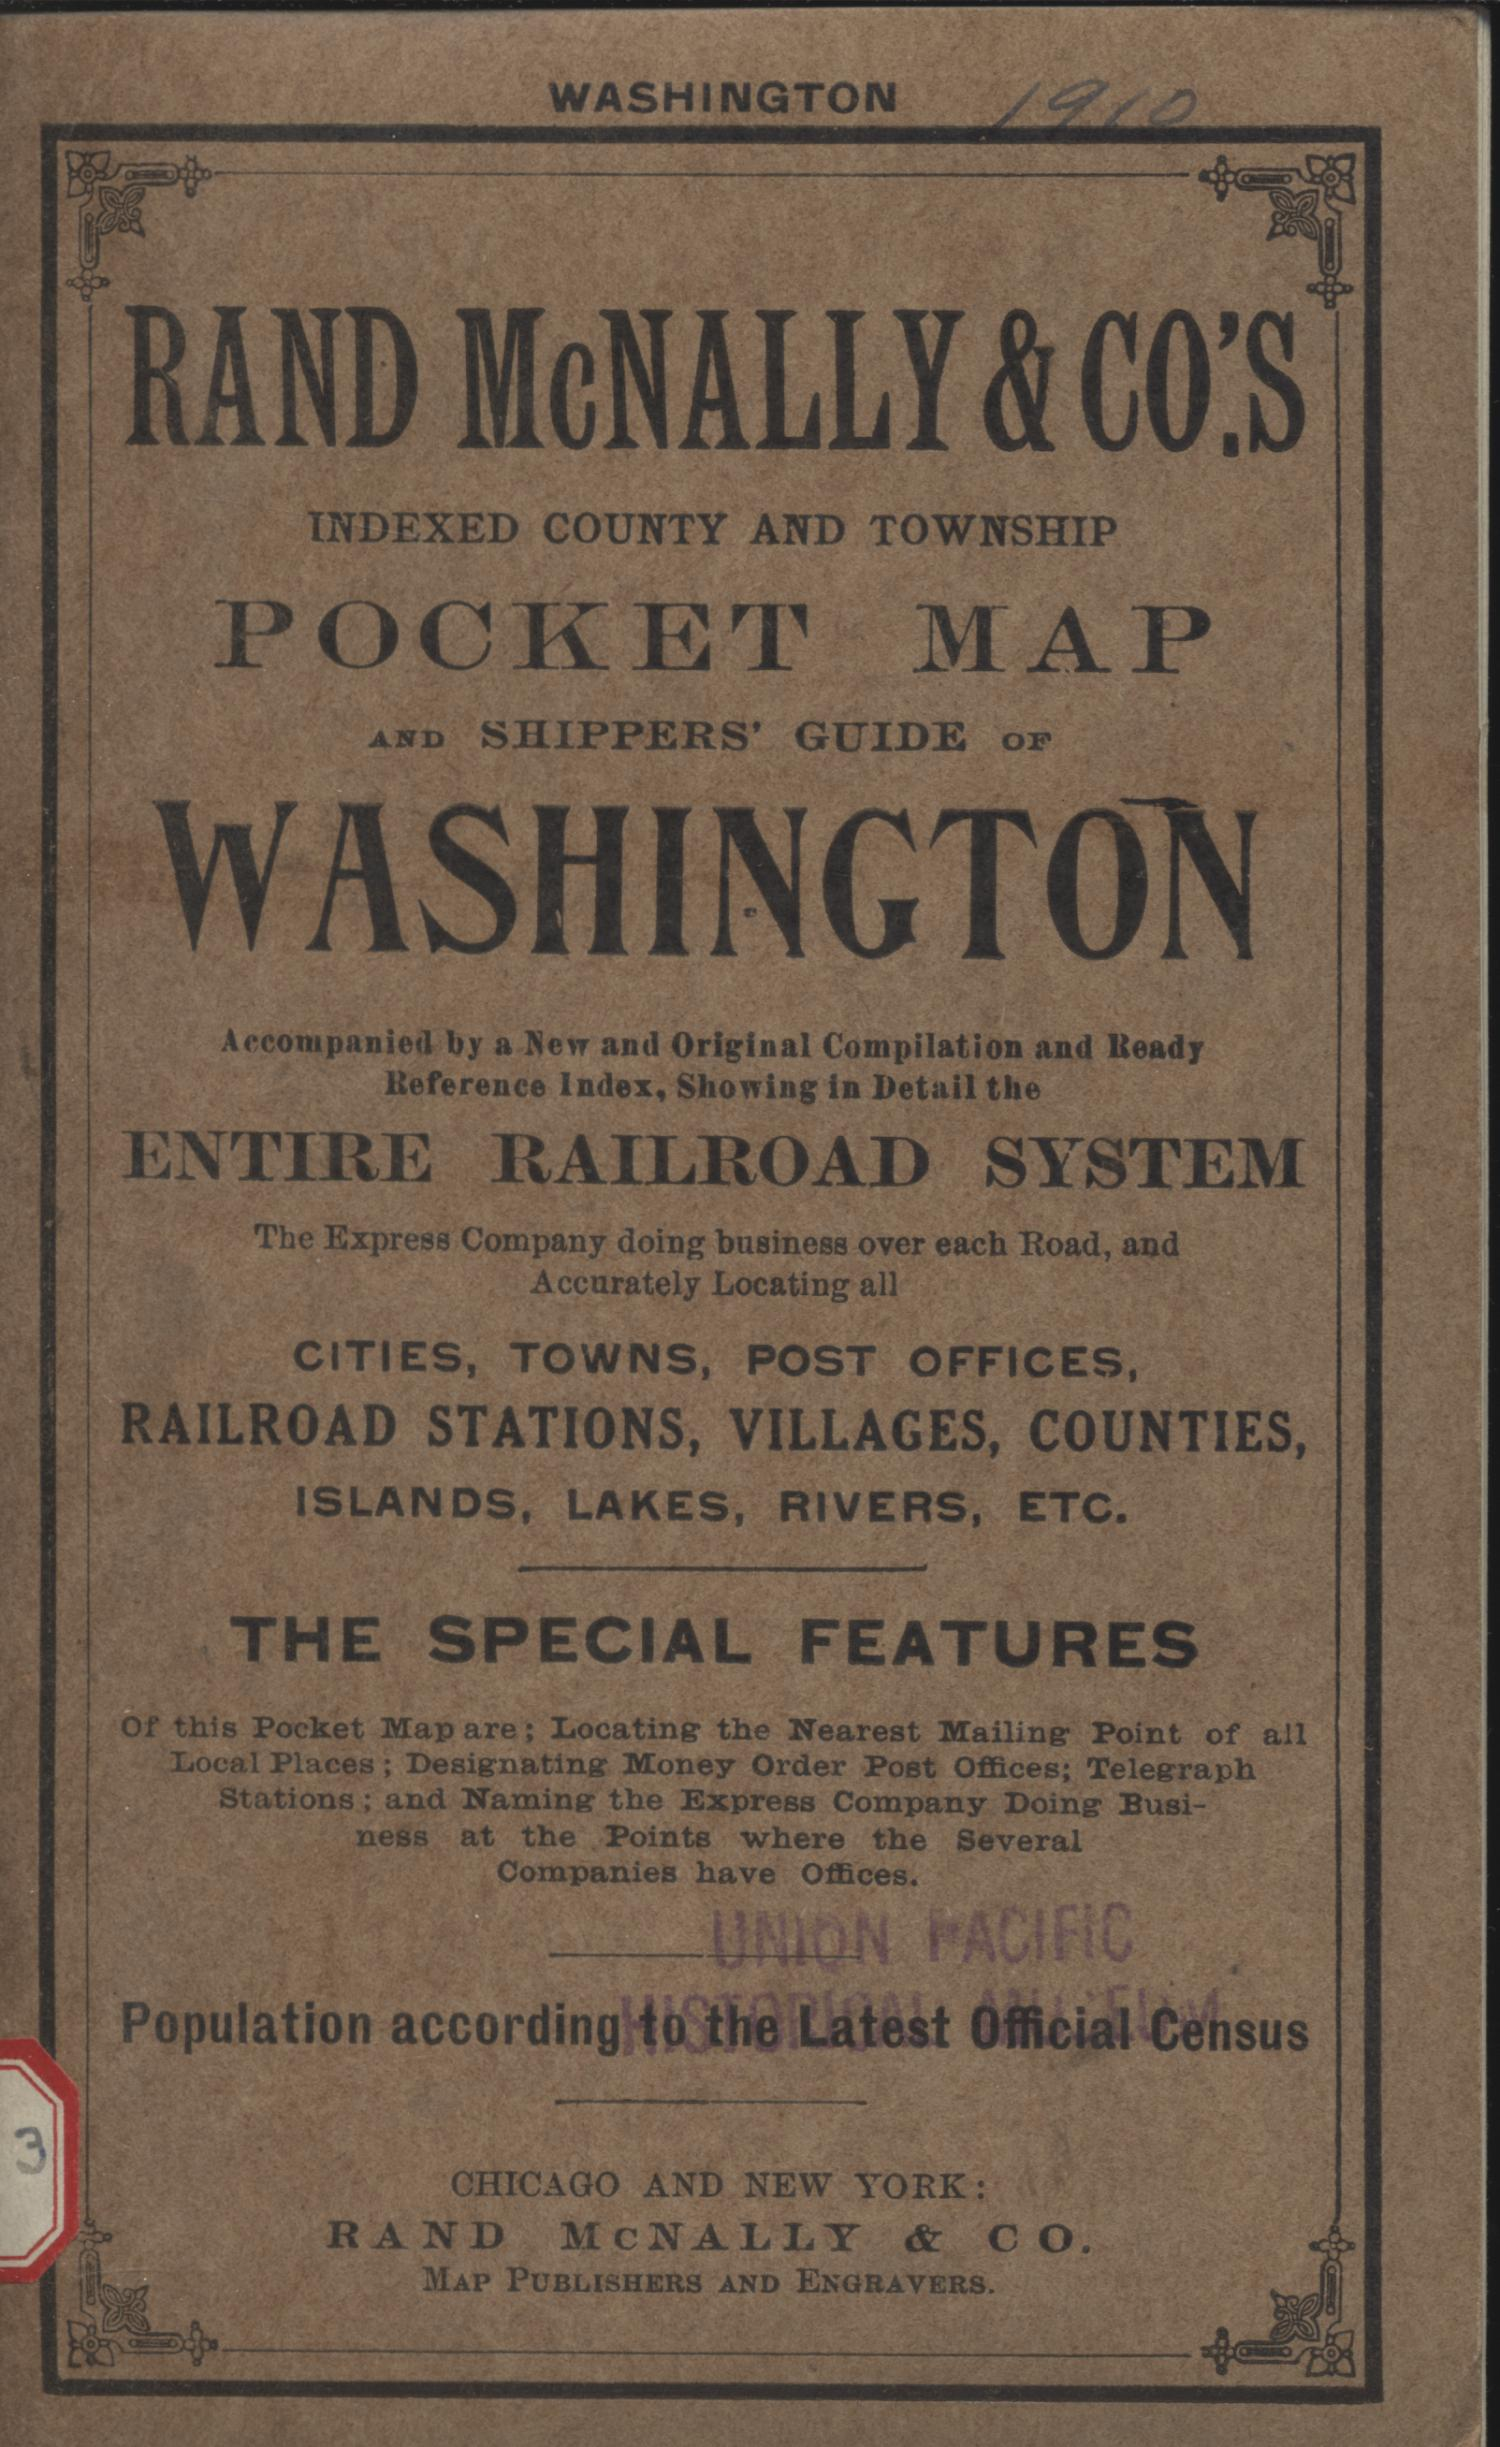 Rand McNally & Co.s new business atlas map of Washington., Explanation and supporting information related to map that shows early nineteenth century Washington counties, township grid, Native American reservations, railroads, national parks, and notable physical features.,